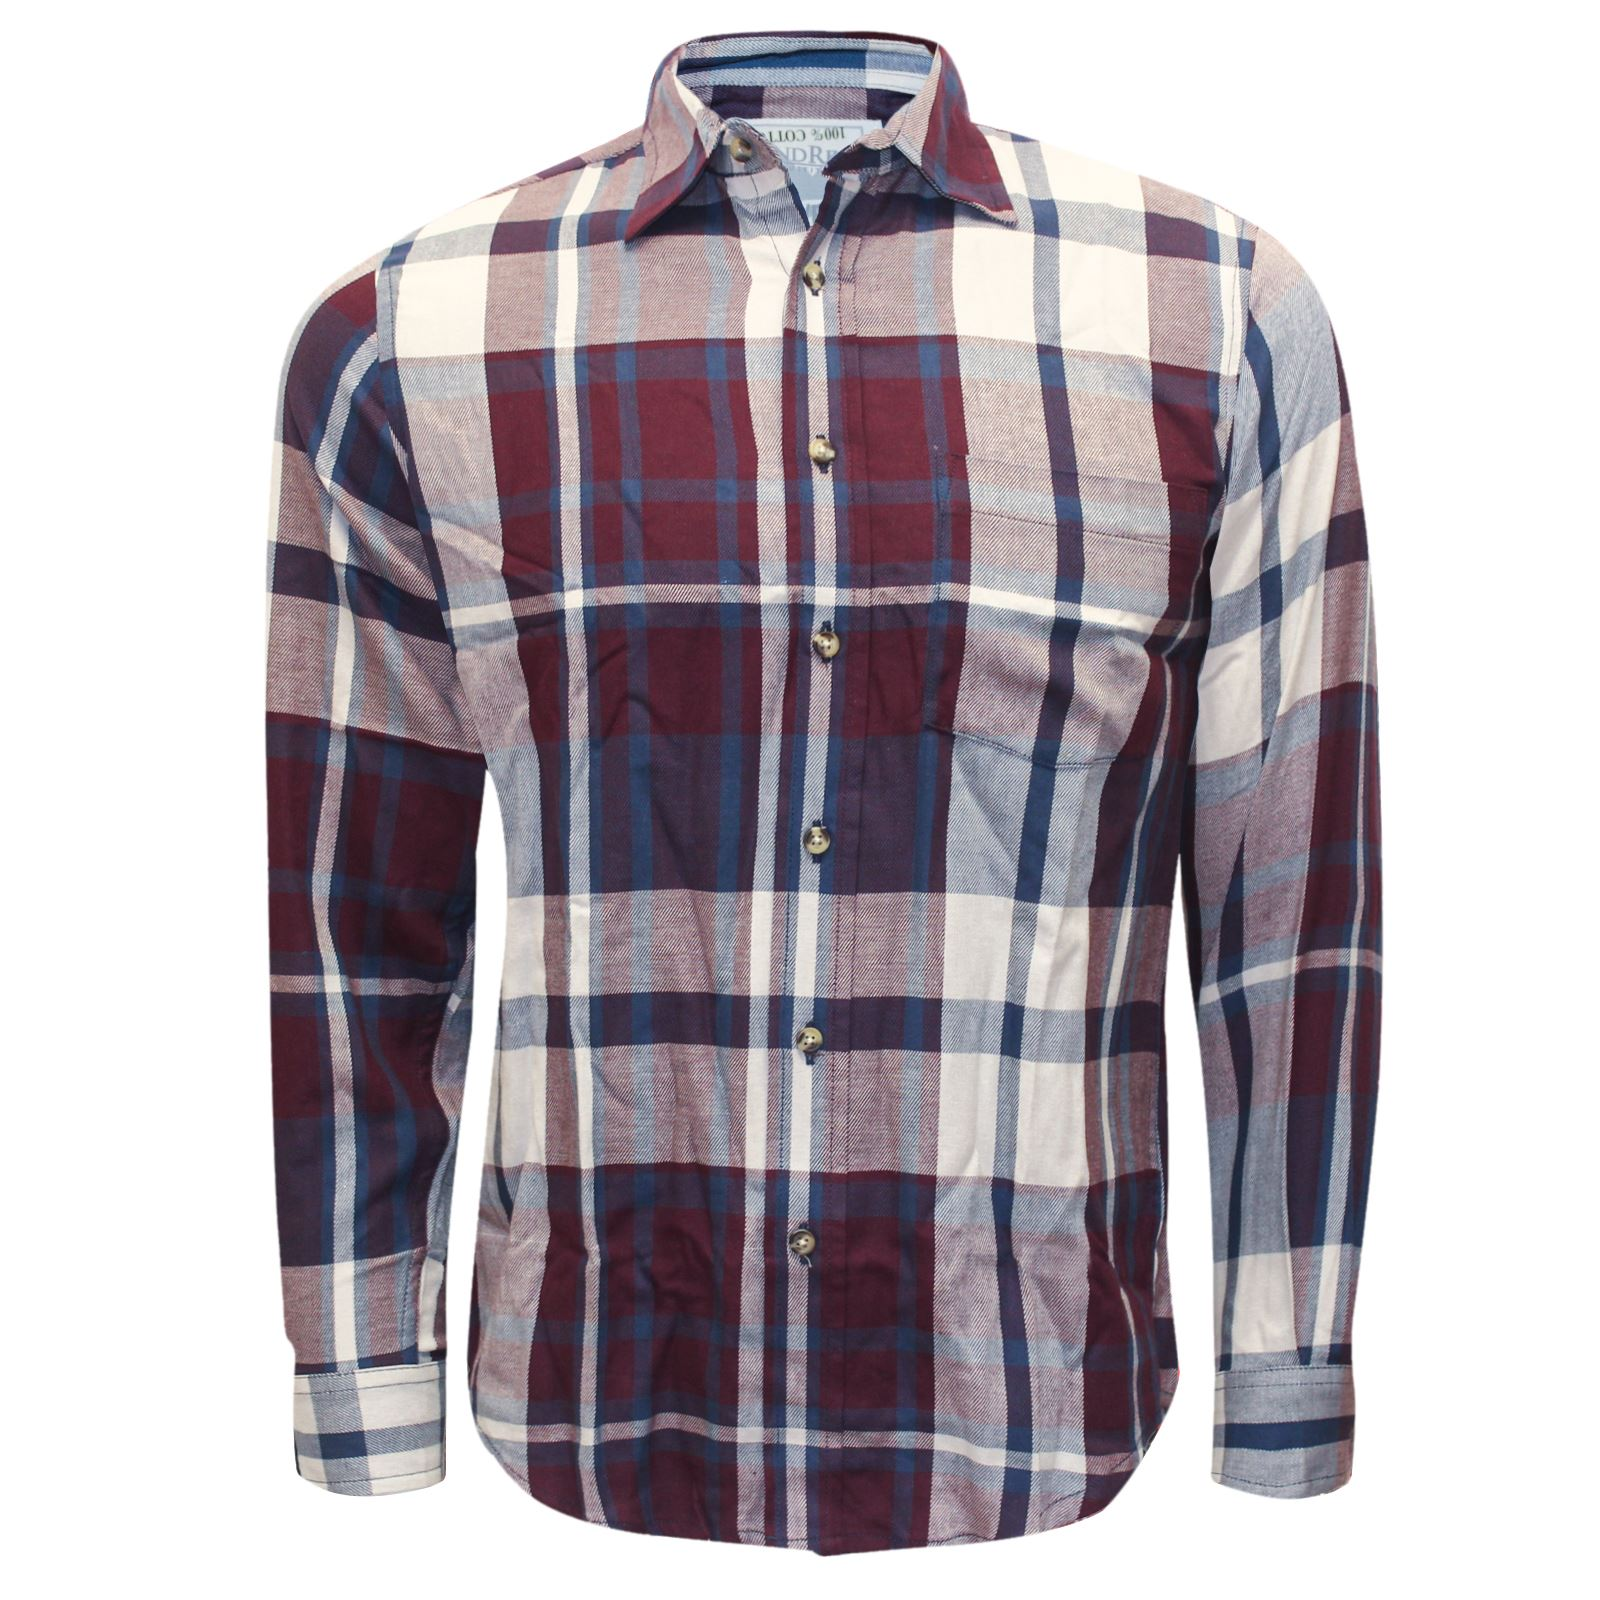 New mens check shirt branded flannel brushed cotton long for Mens long sleeve casual cotton shirts